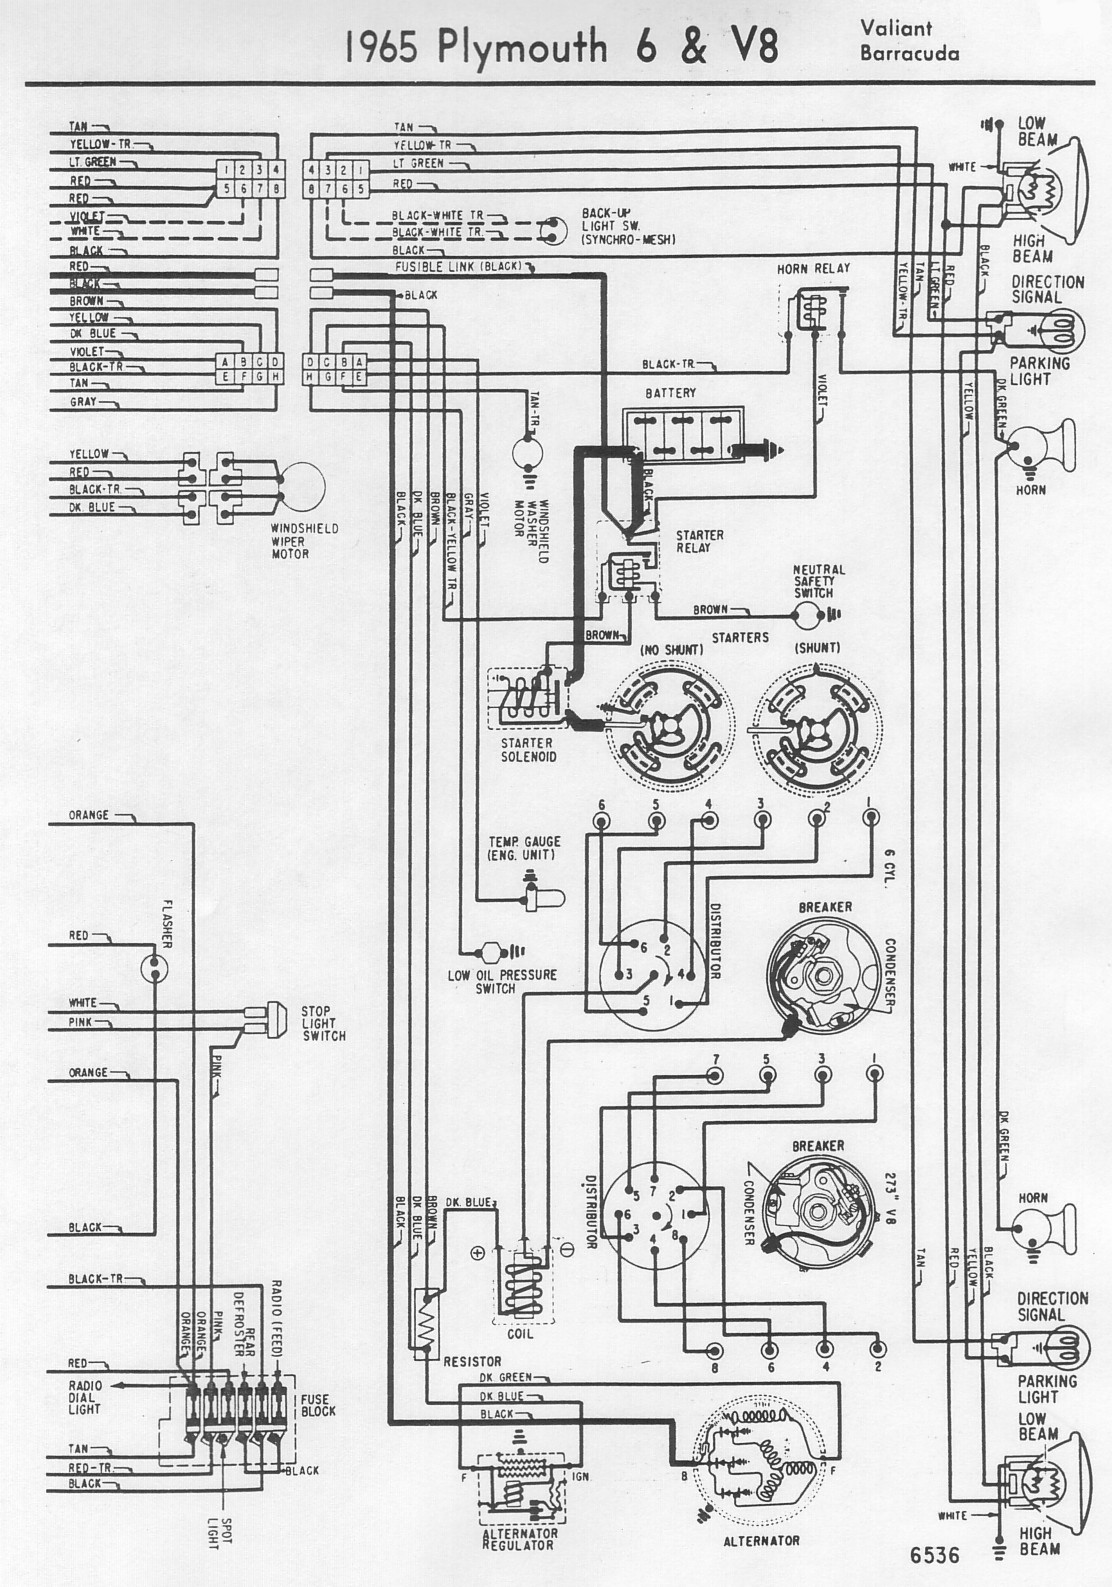 Free Auto Wiring Diagram: 1965 Plymouth Valiant or Barracuda Engine Compartment Wiring Diagram